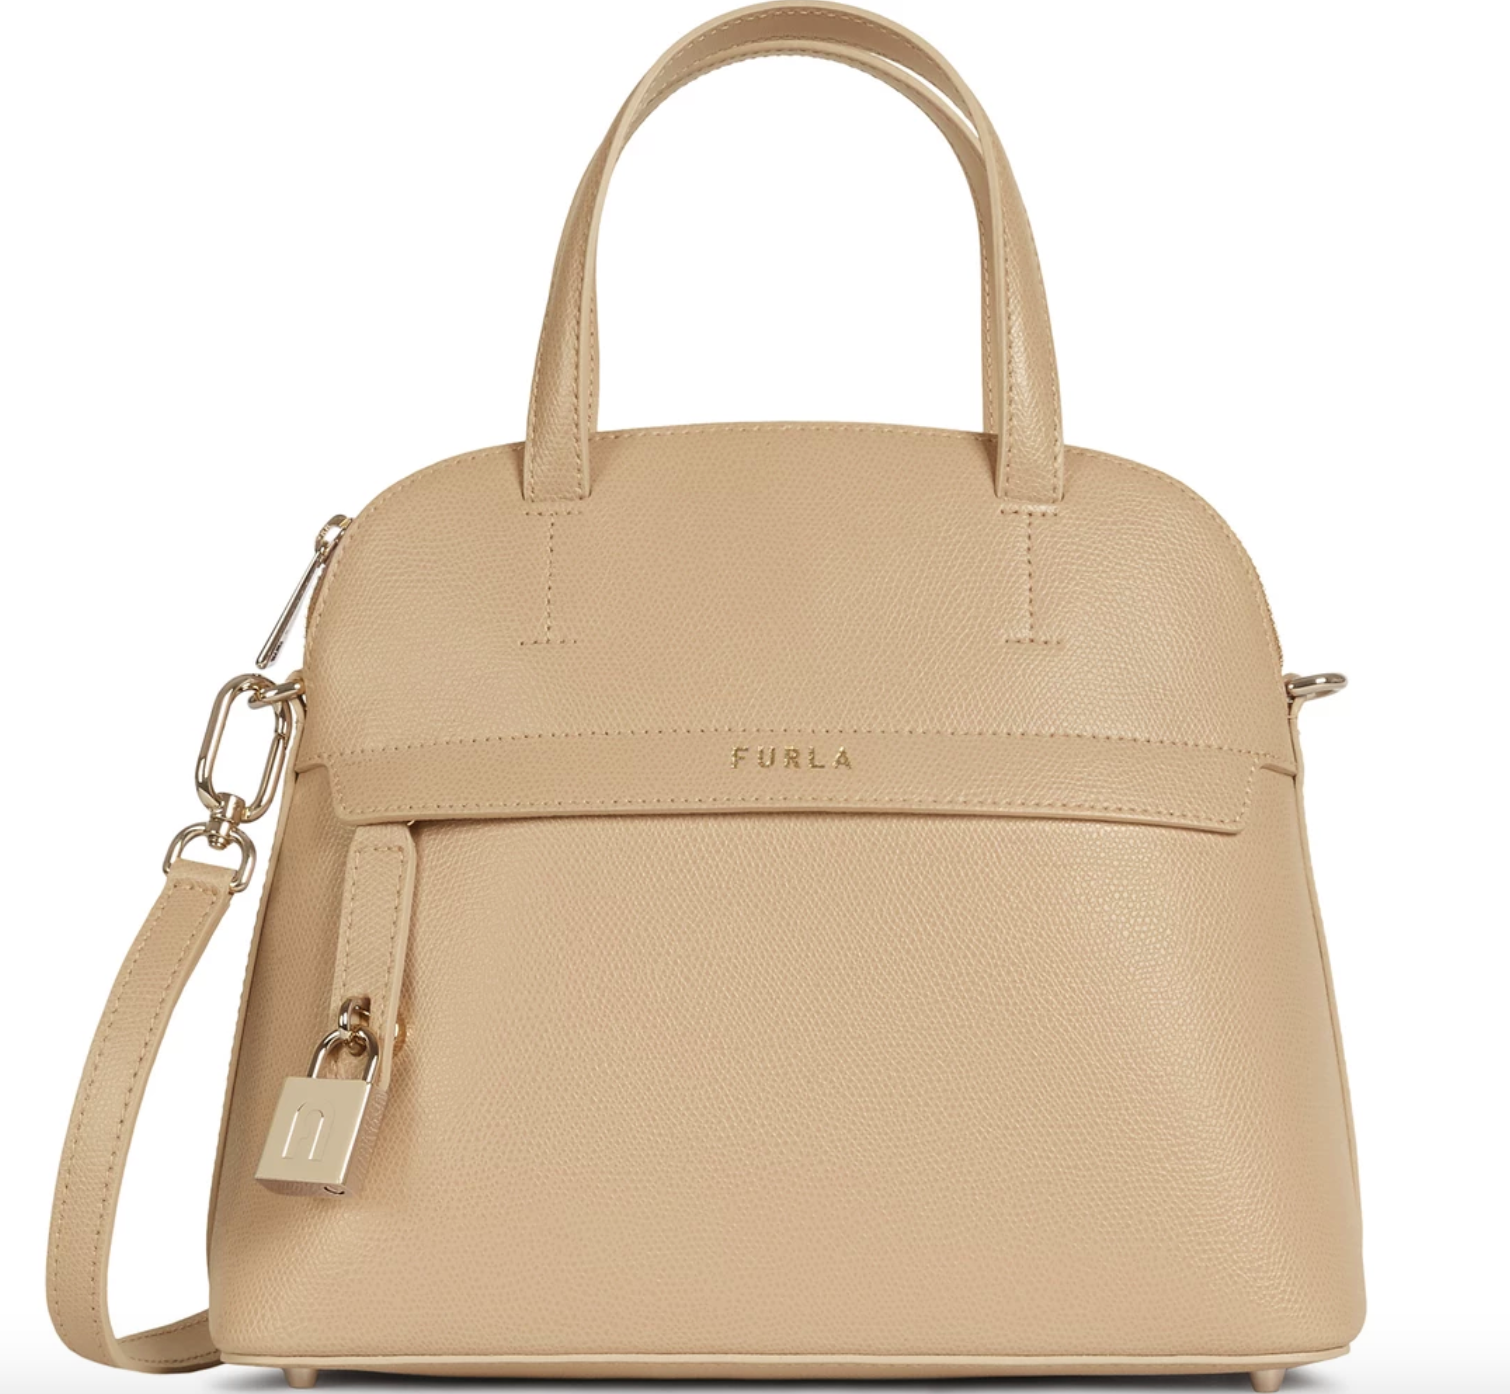 Furla Small Piper Dome Satchel